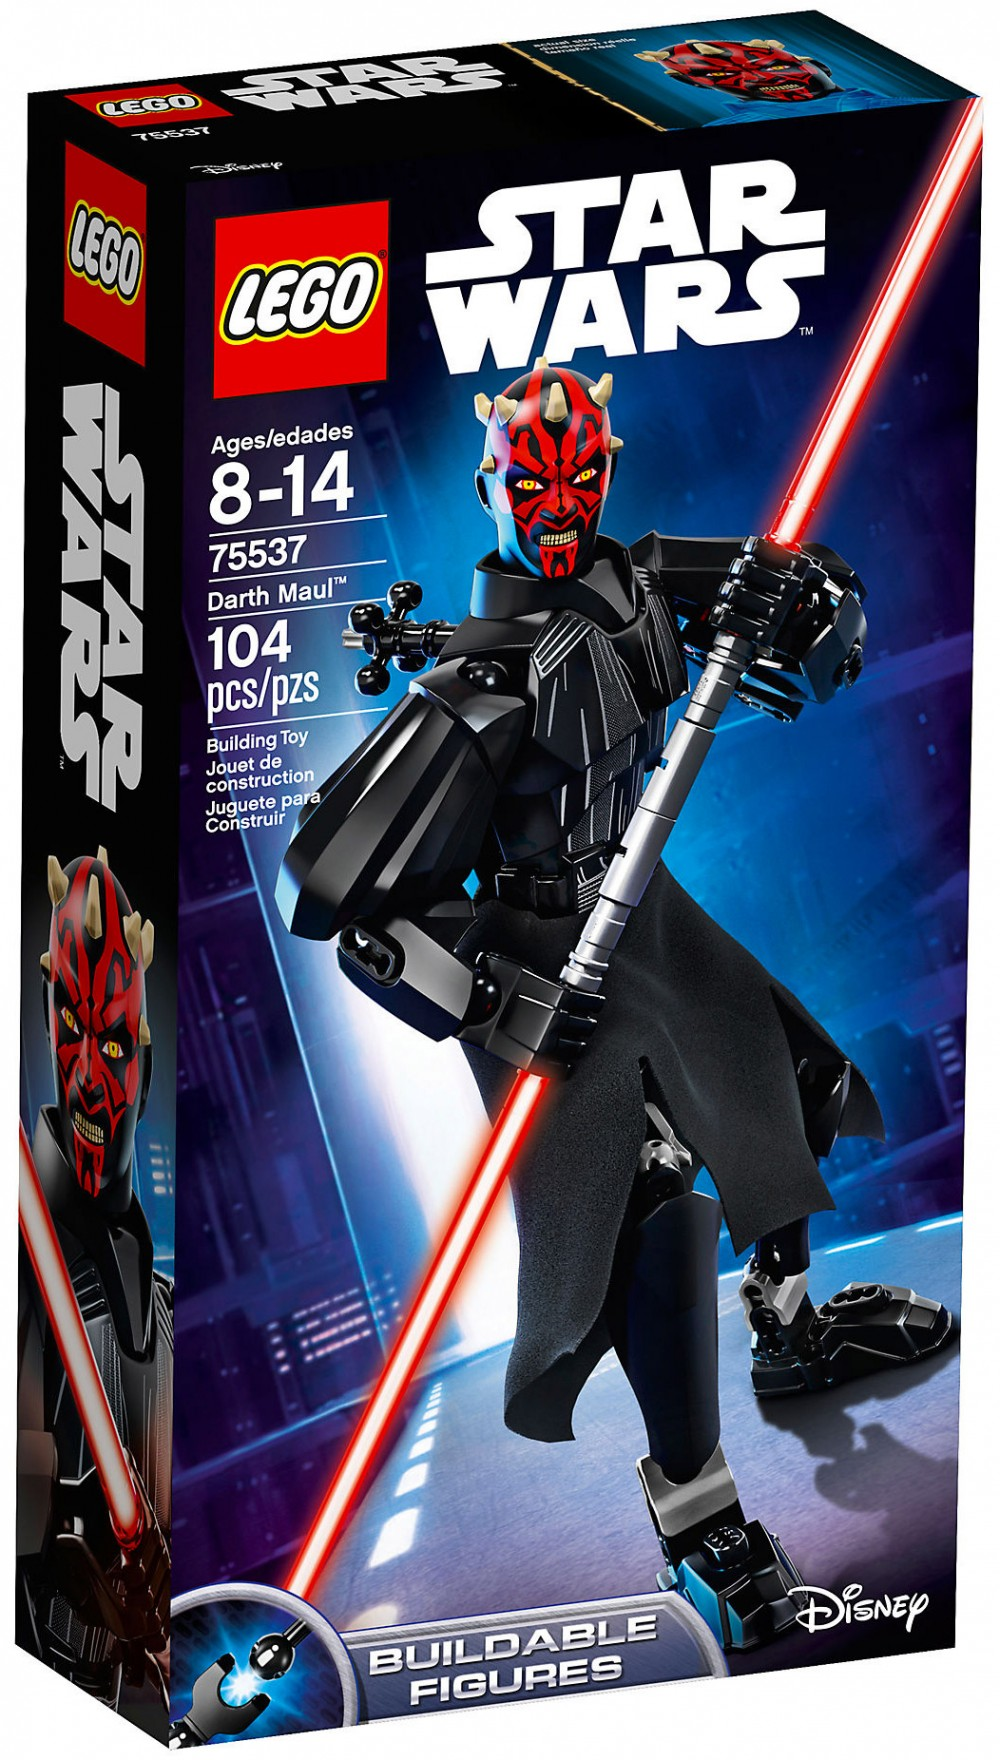 Nouveau LEGO Star Wars 75537 Dark Maul (Buildable Figures) 2018